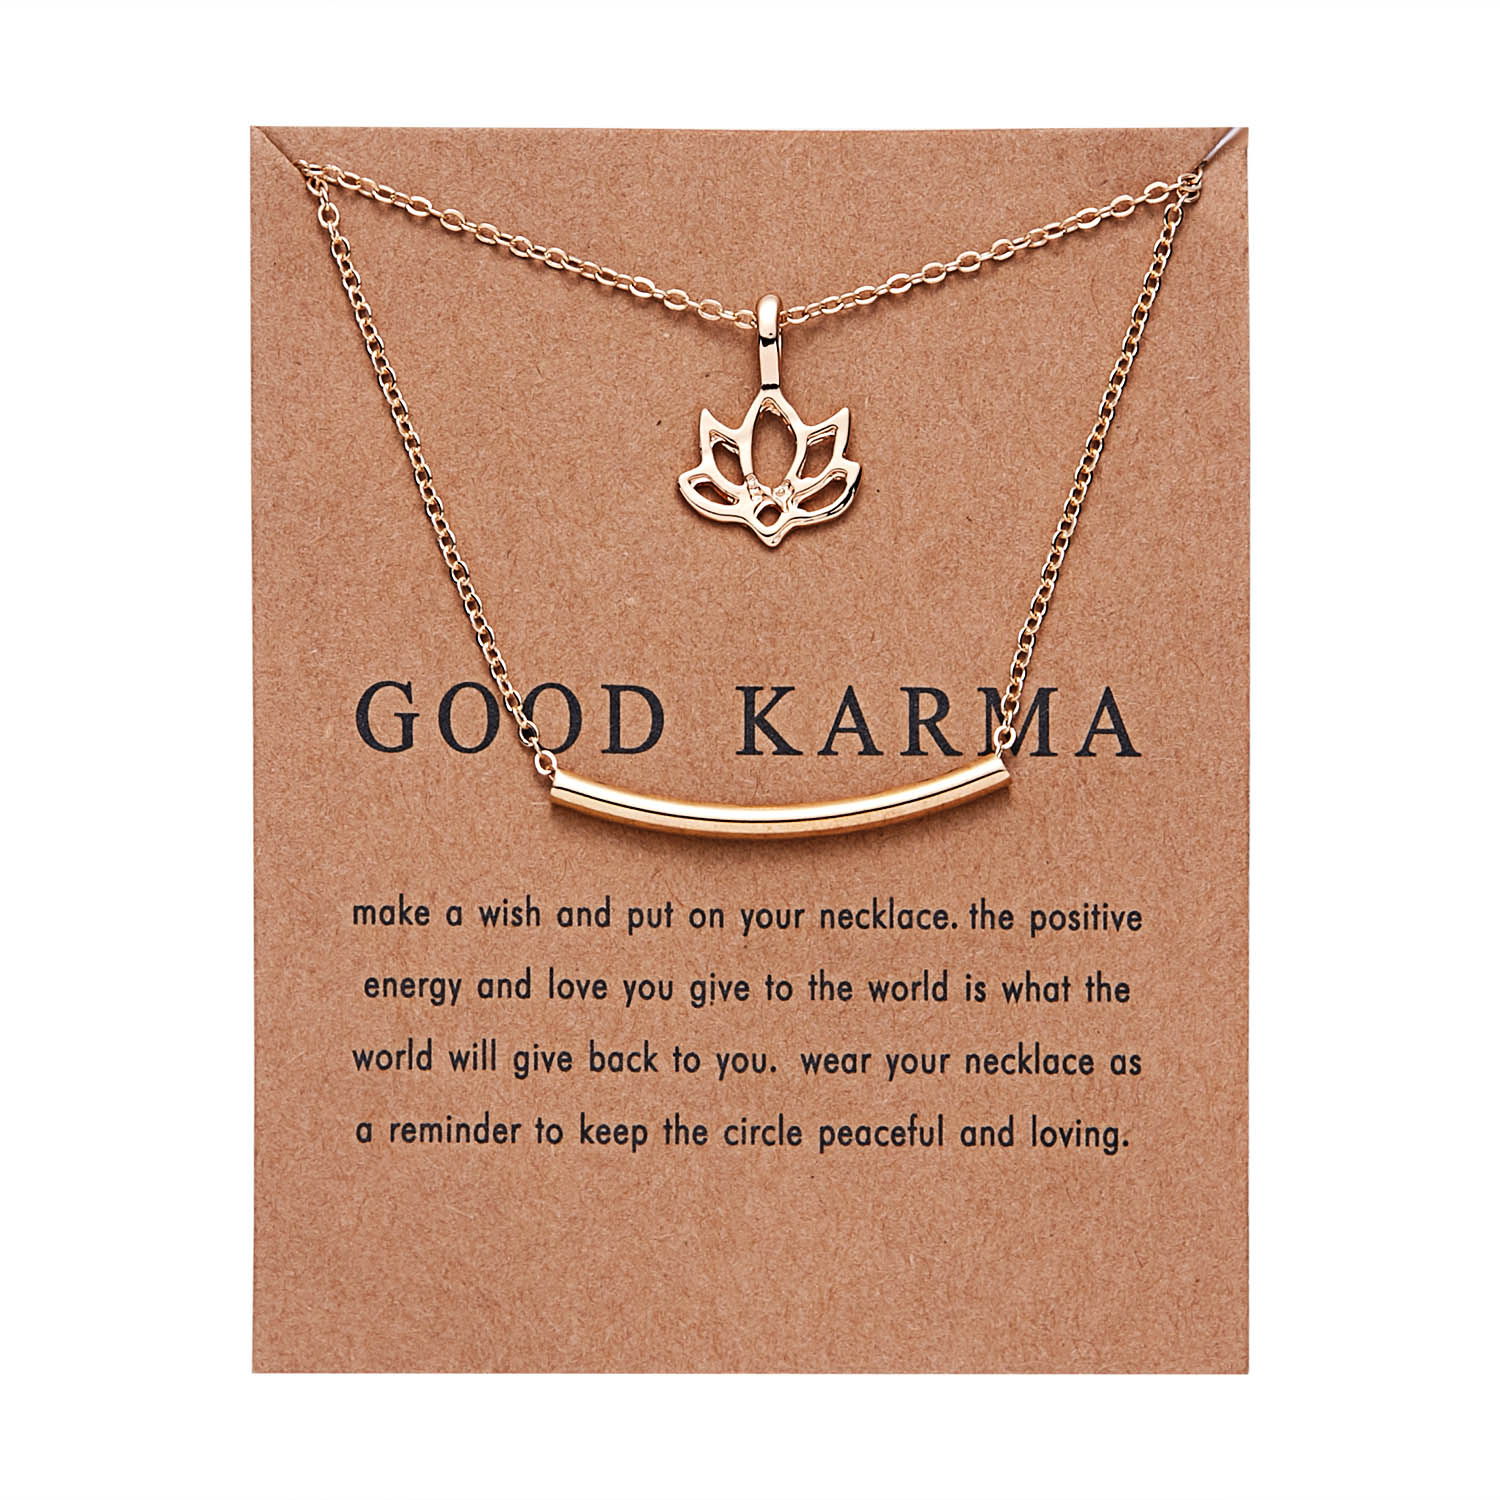 Rinhoo Double Layer Buddha Lotus Balance Tube Bar Necklace gold lotus pendant necklace with card charm jewelry gift For women image